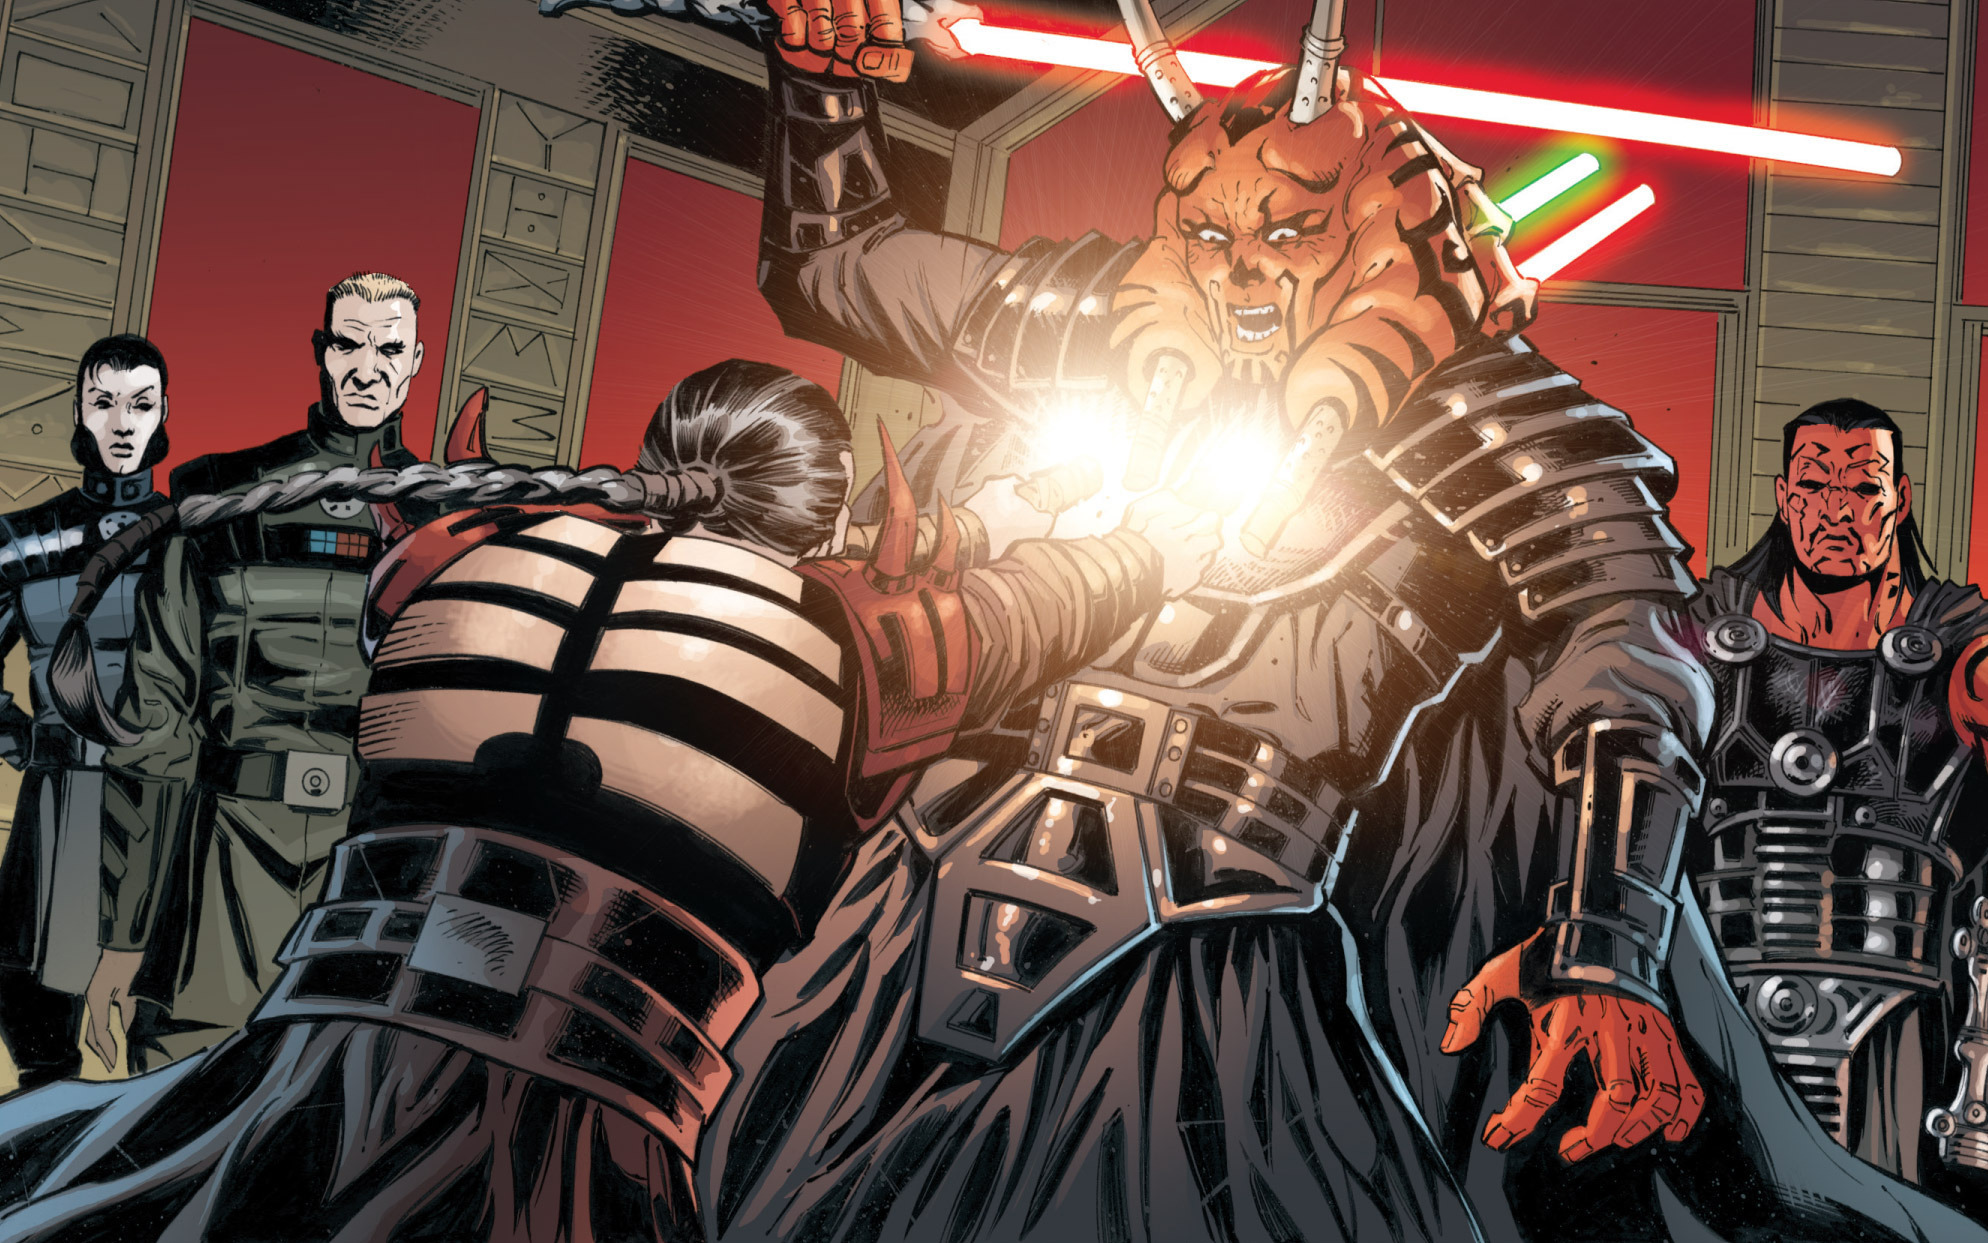 Darth Krayt vs Darth Wyyrlok Darth Wyyrlok Iii Perishes in